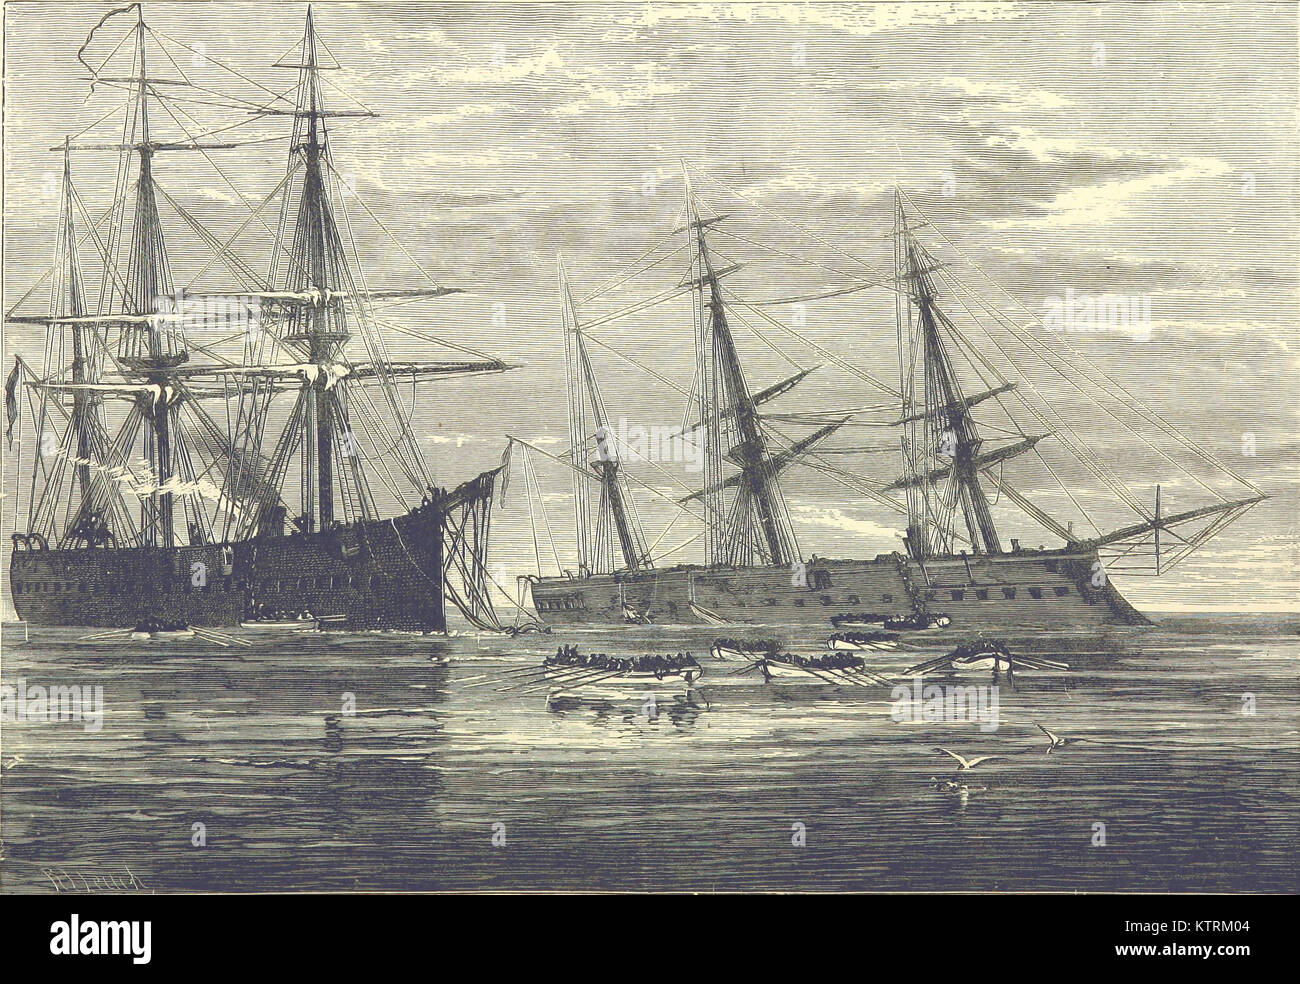 The sinking of the HMS Vanguard (1870). HMS Iron Duke is on the left, HMS Vanguard on the right. 1887 - Stock Image